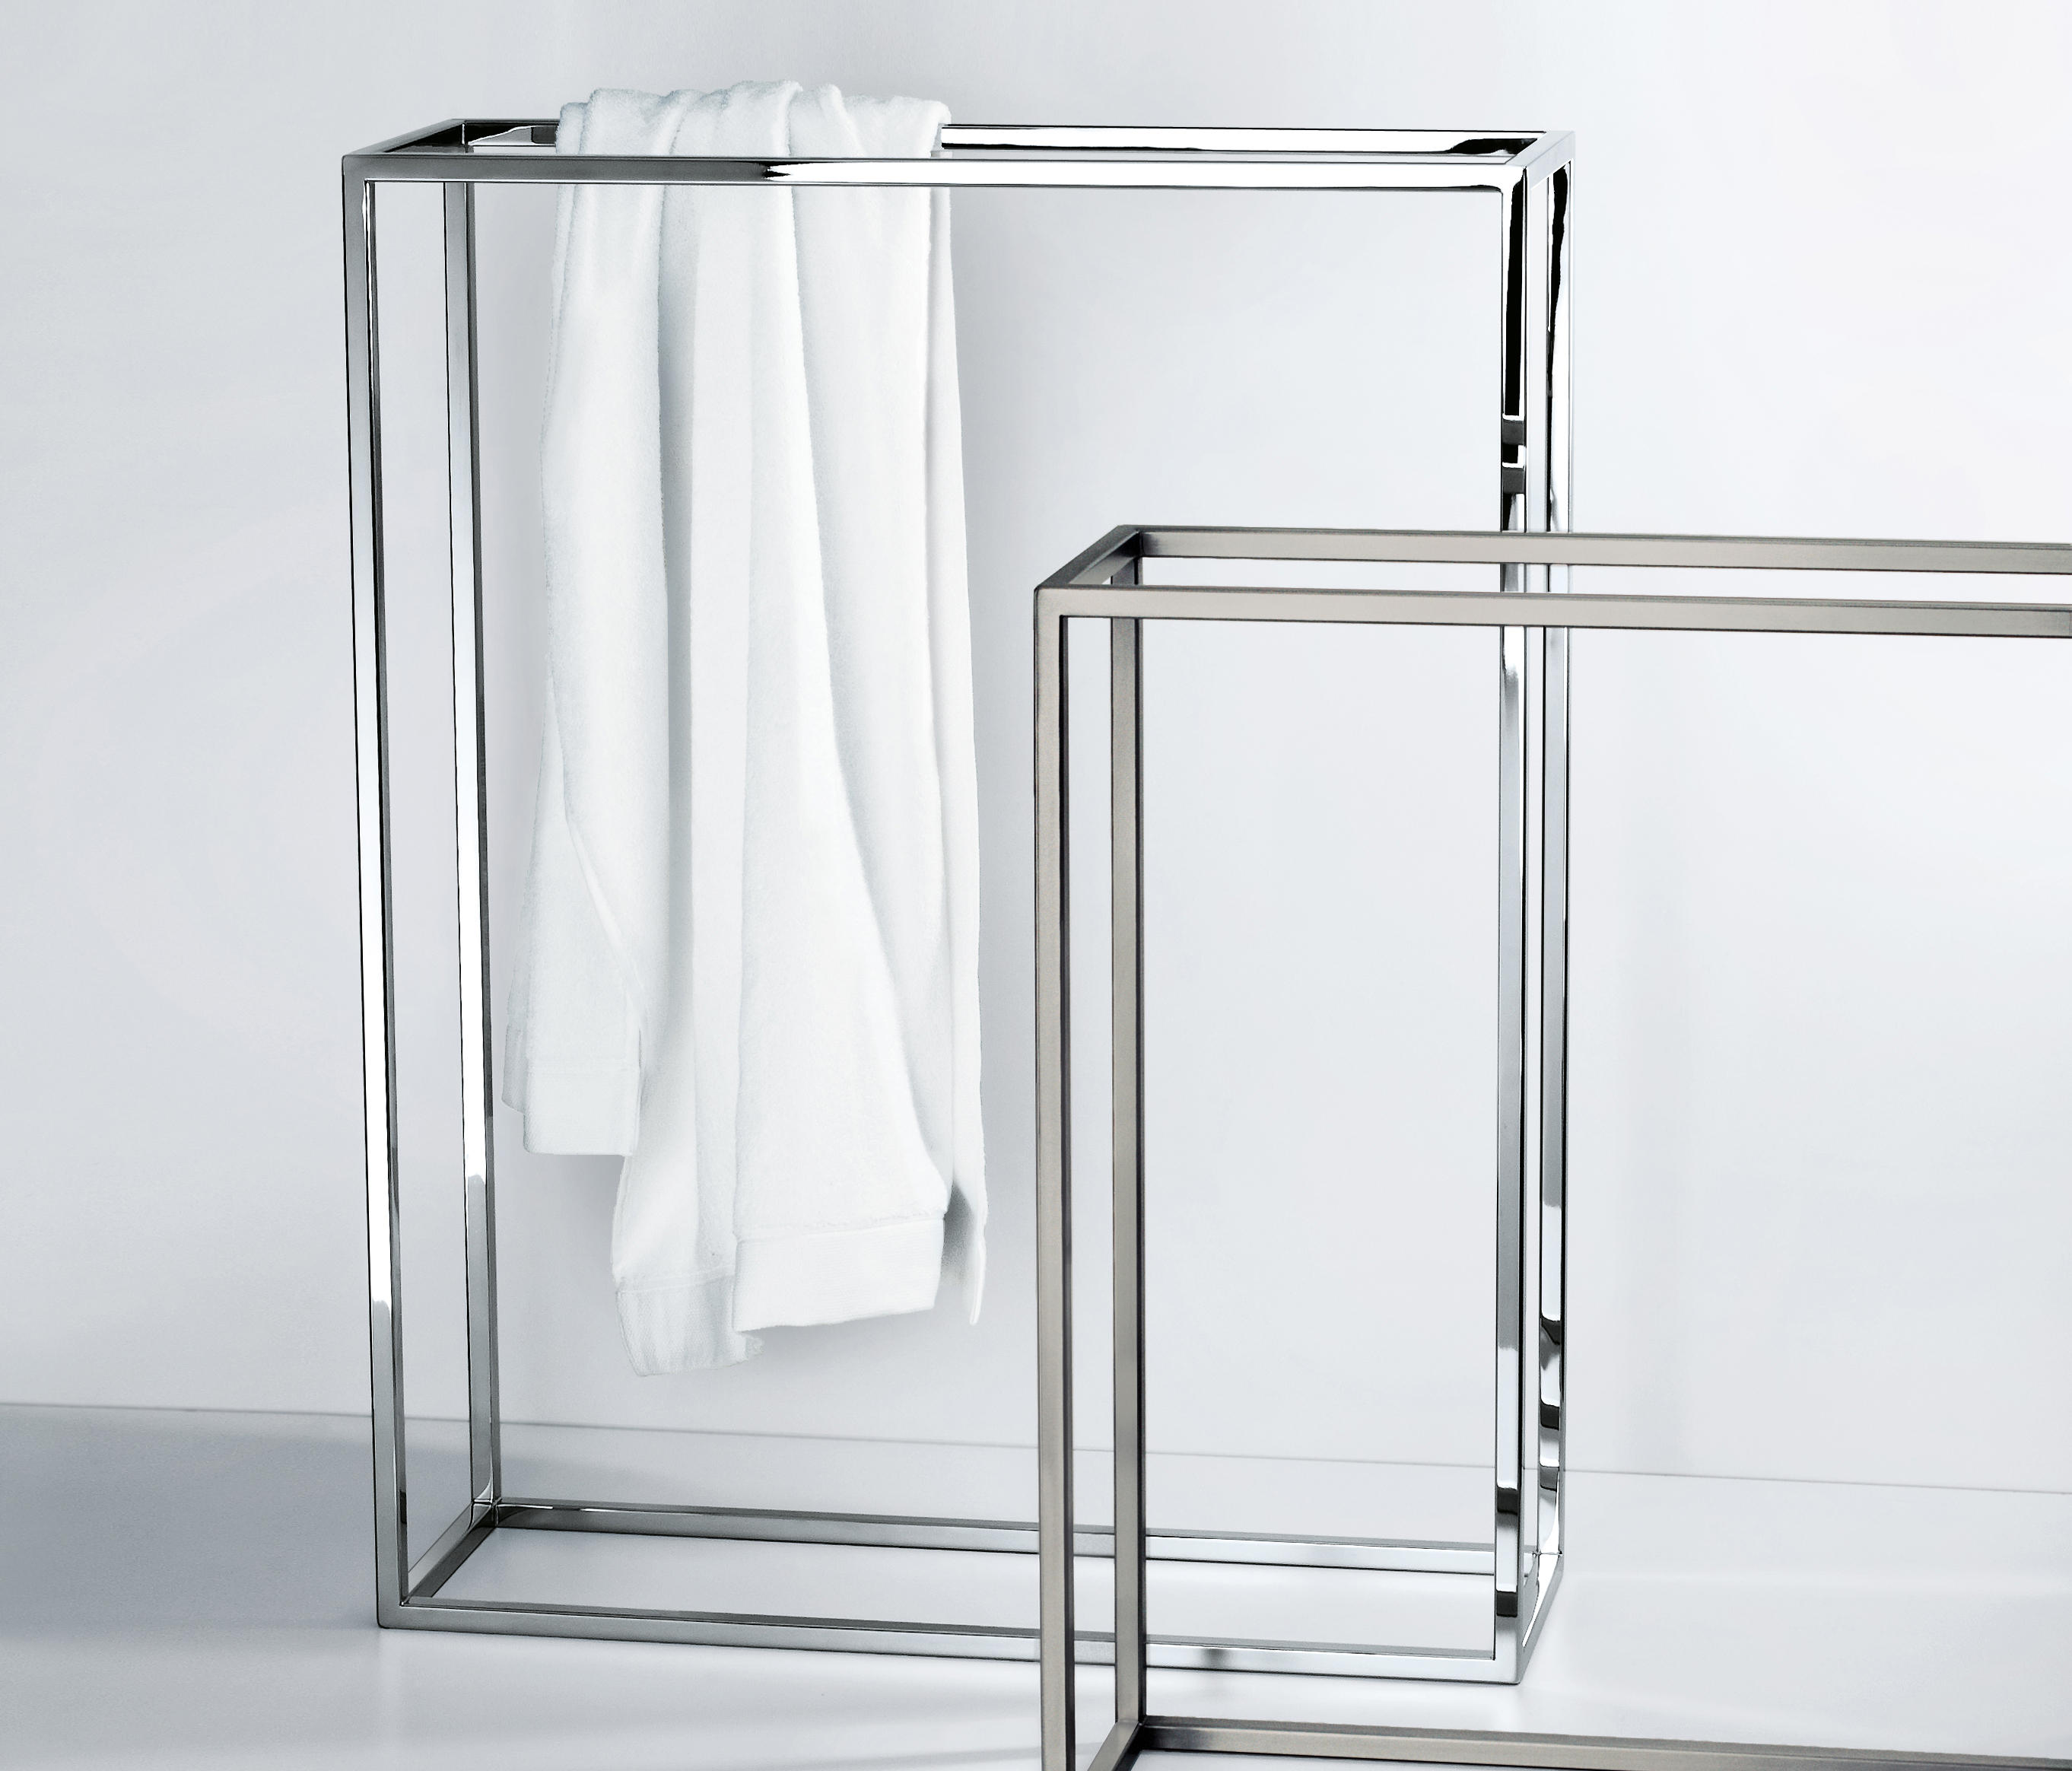 Decor Walther Handtuchhalter Ht 45 Towel Rails From Decor Walther Architonic